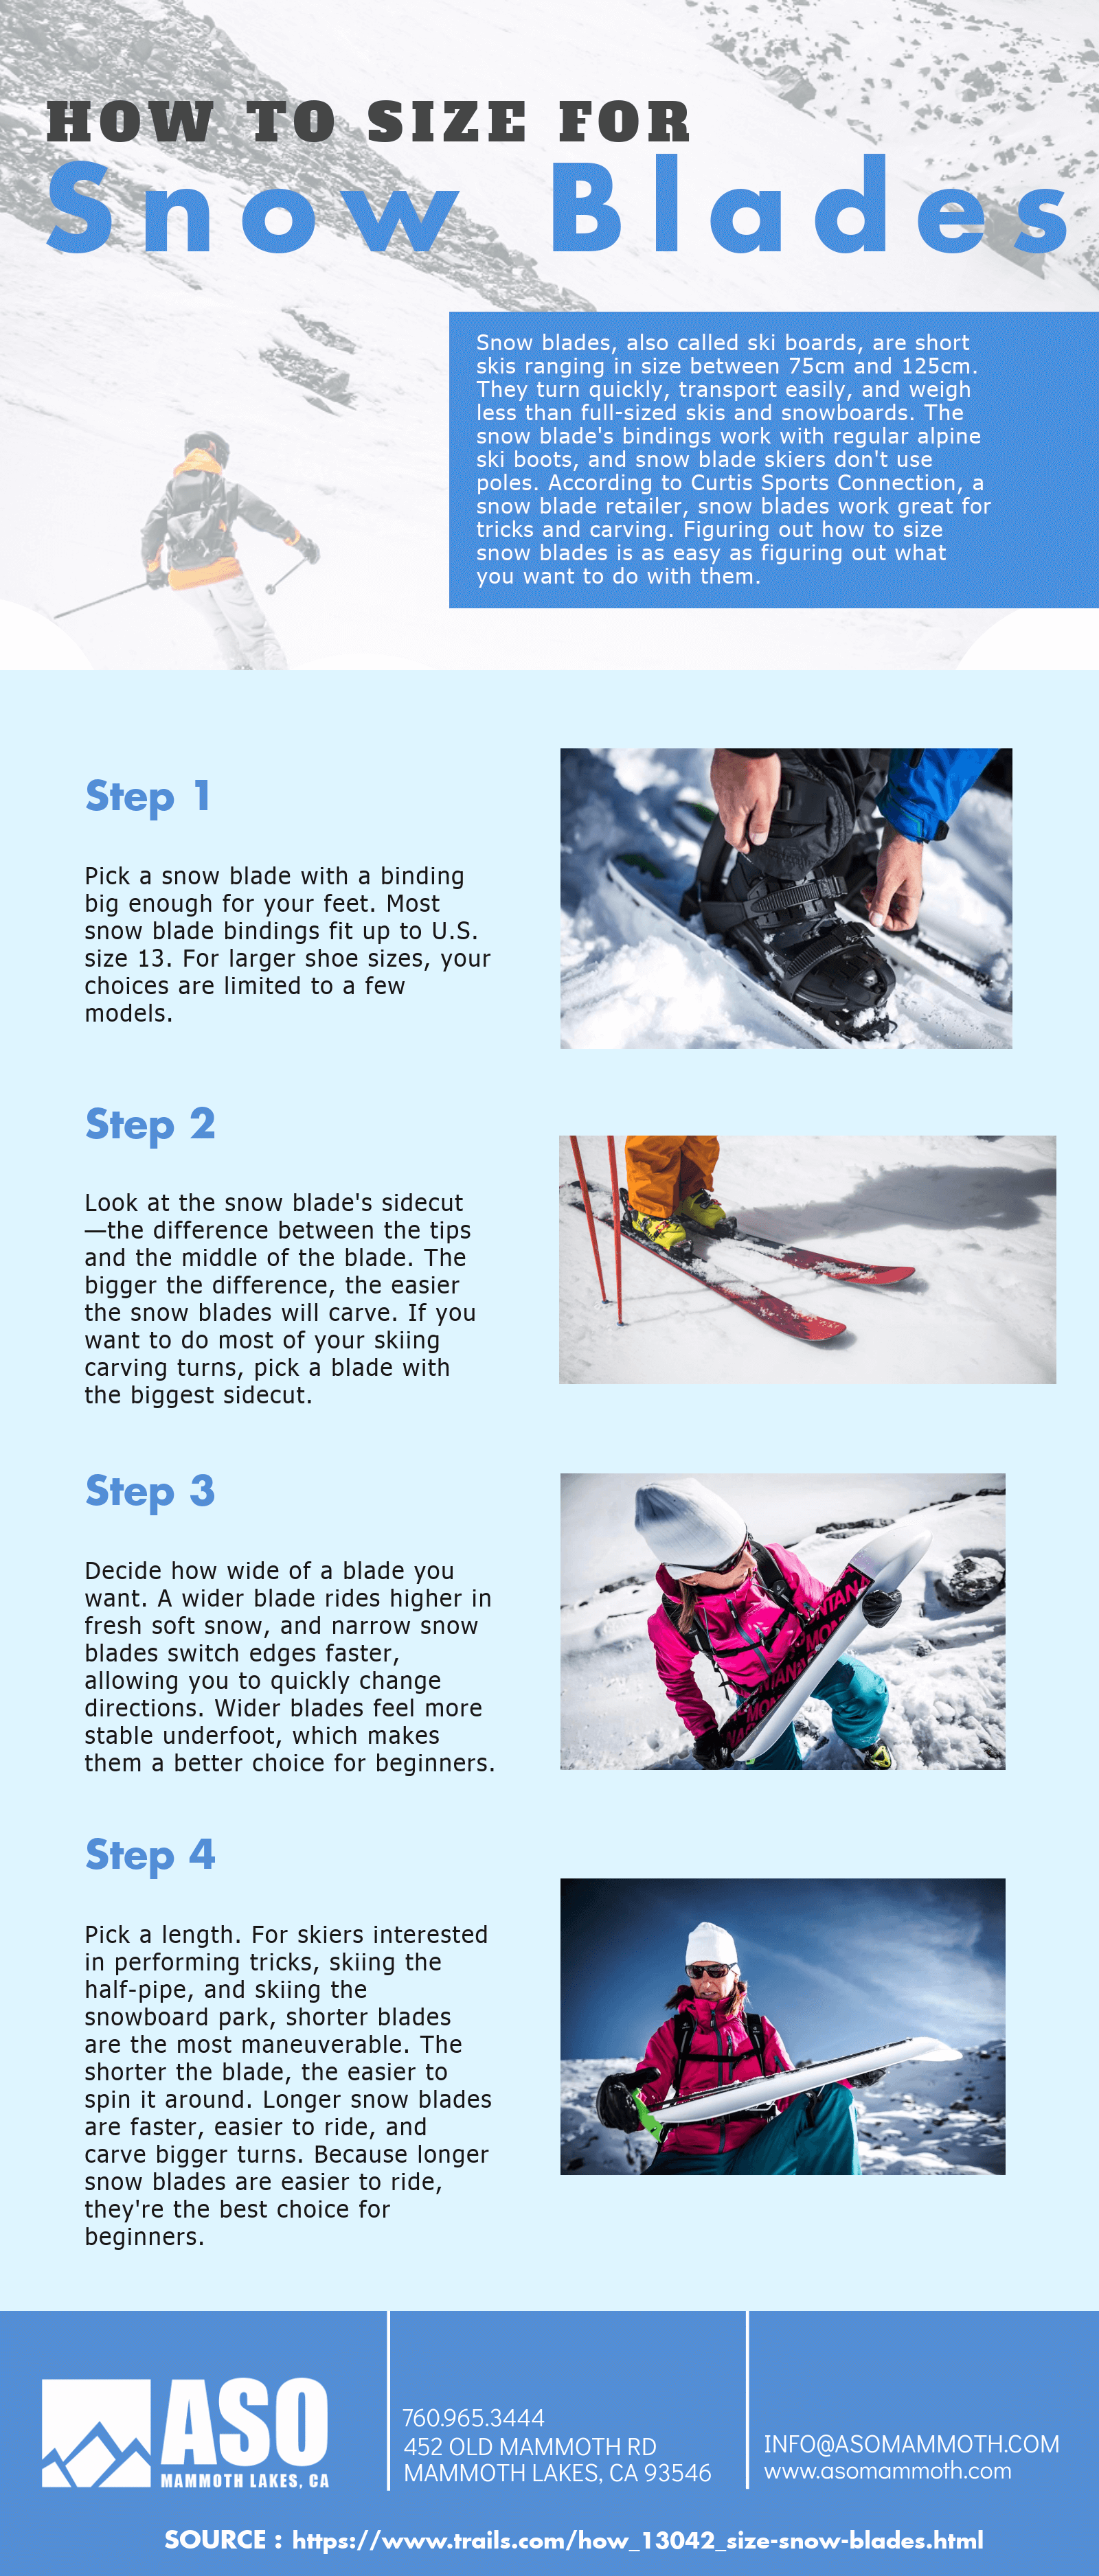 How to Size for Snow Blades [Infographic]